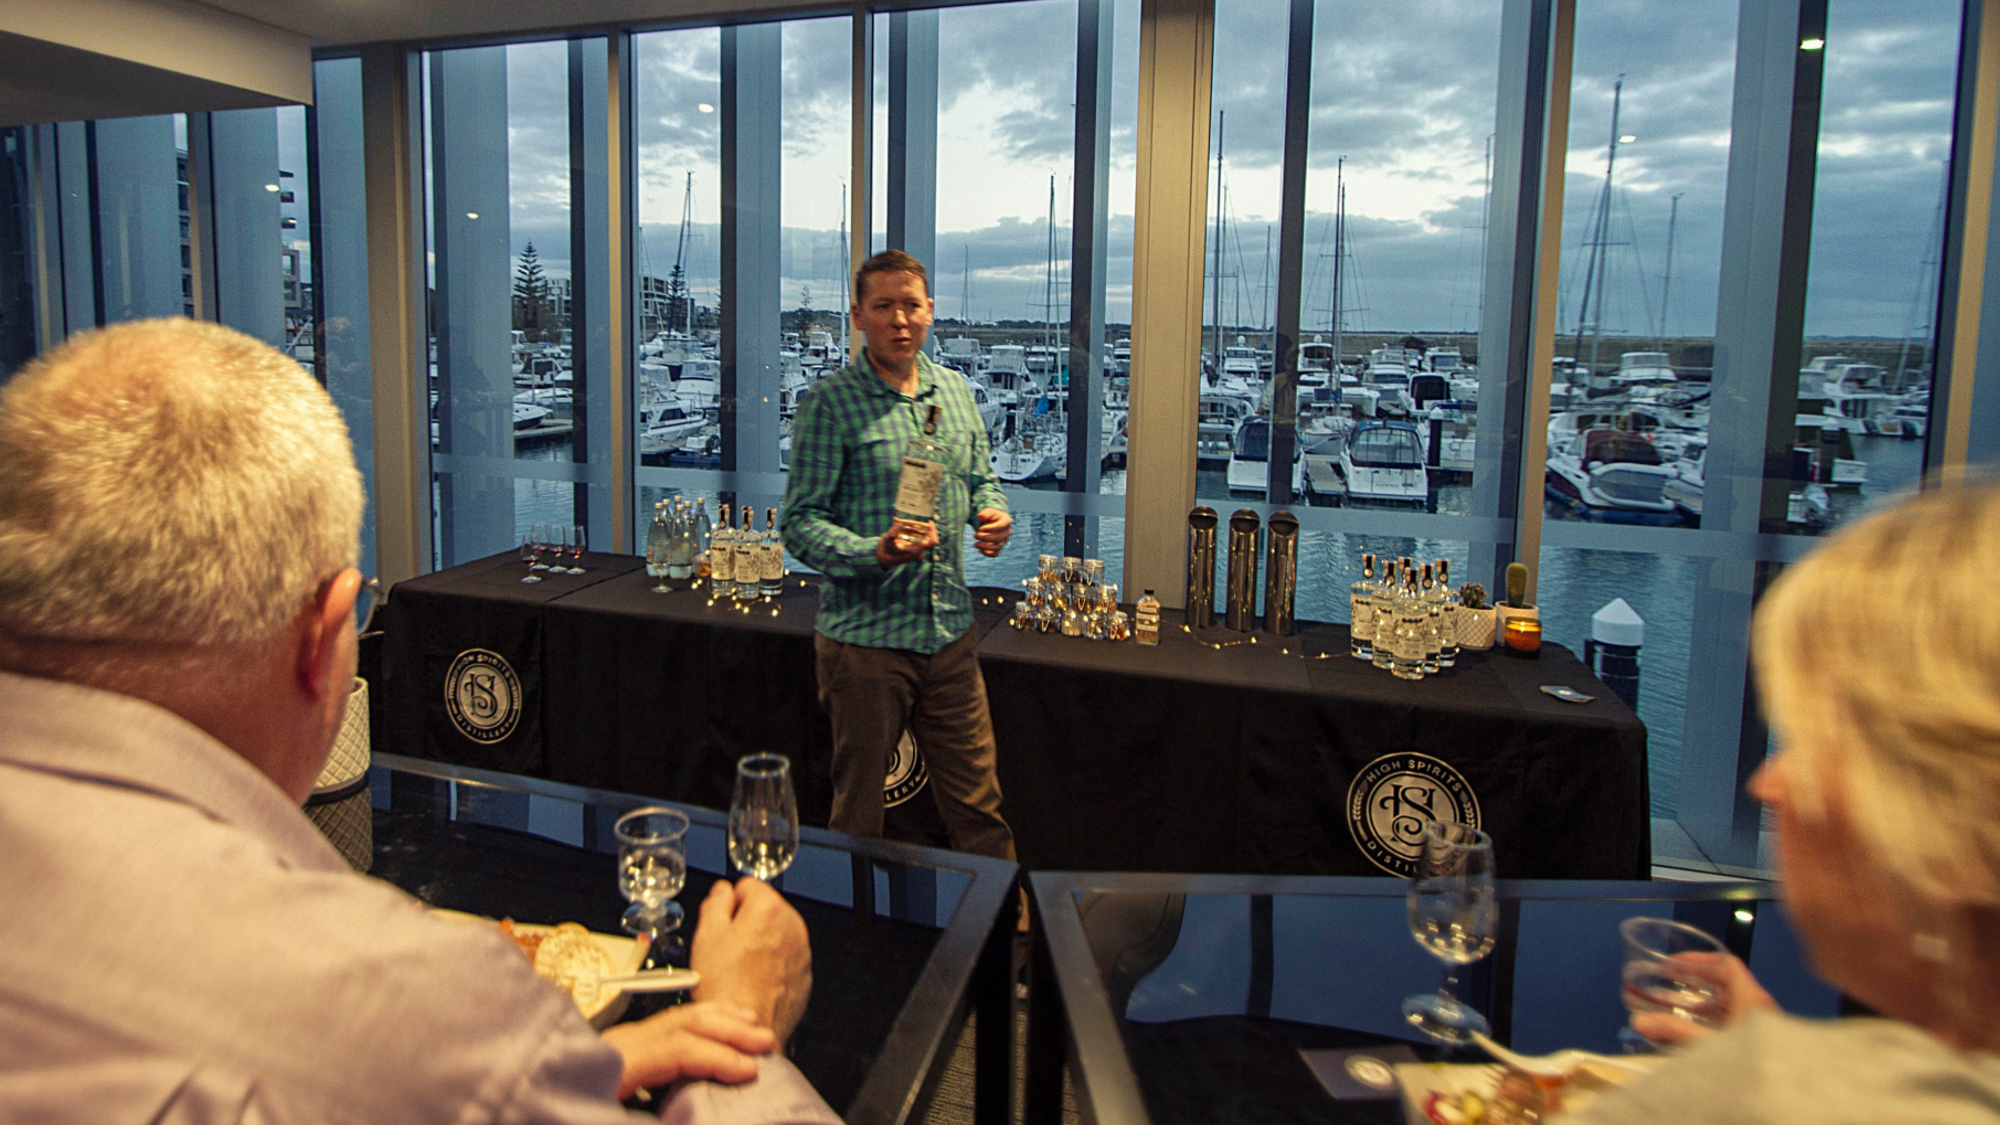 Meet the Maker - Journey Through Gin at Port Coogee